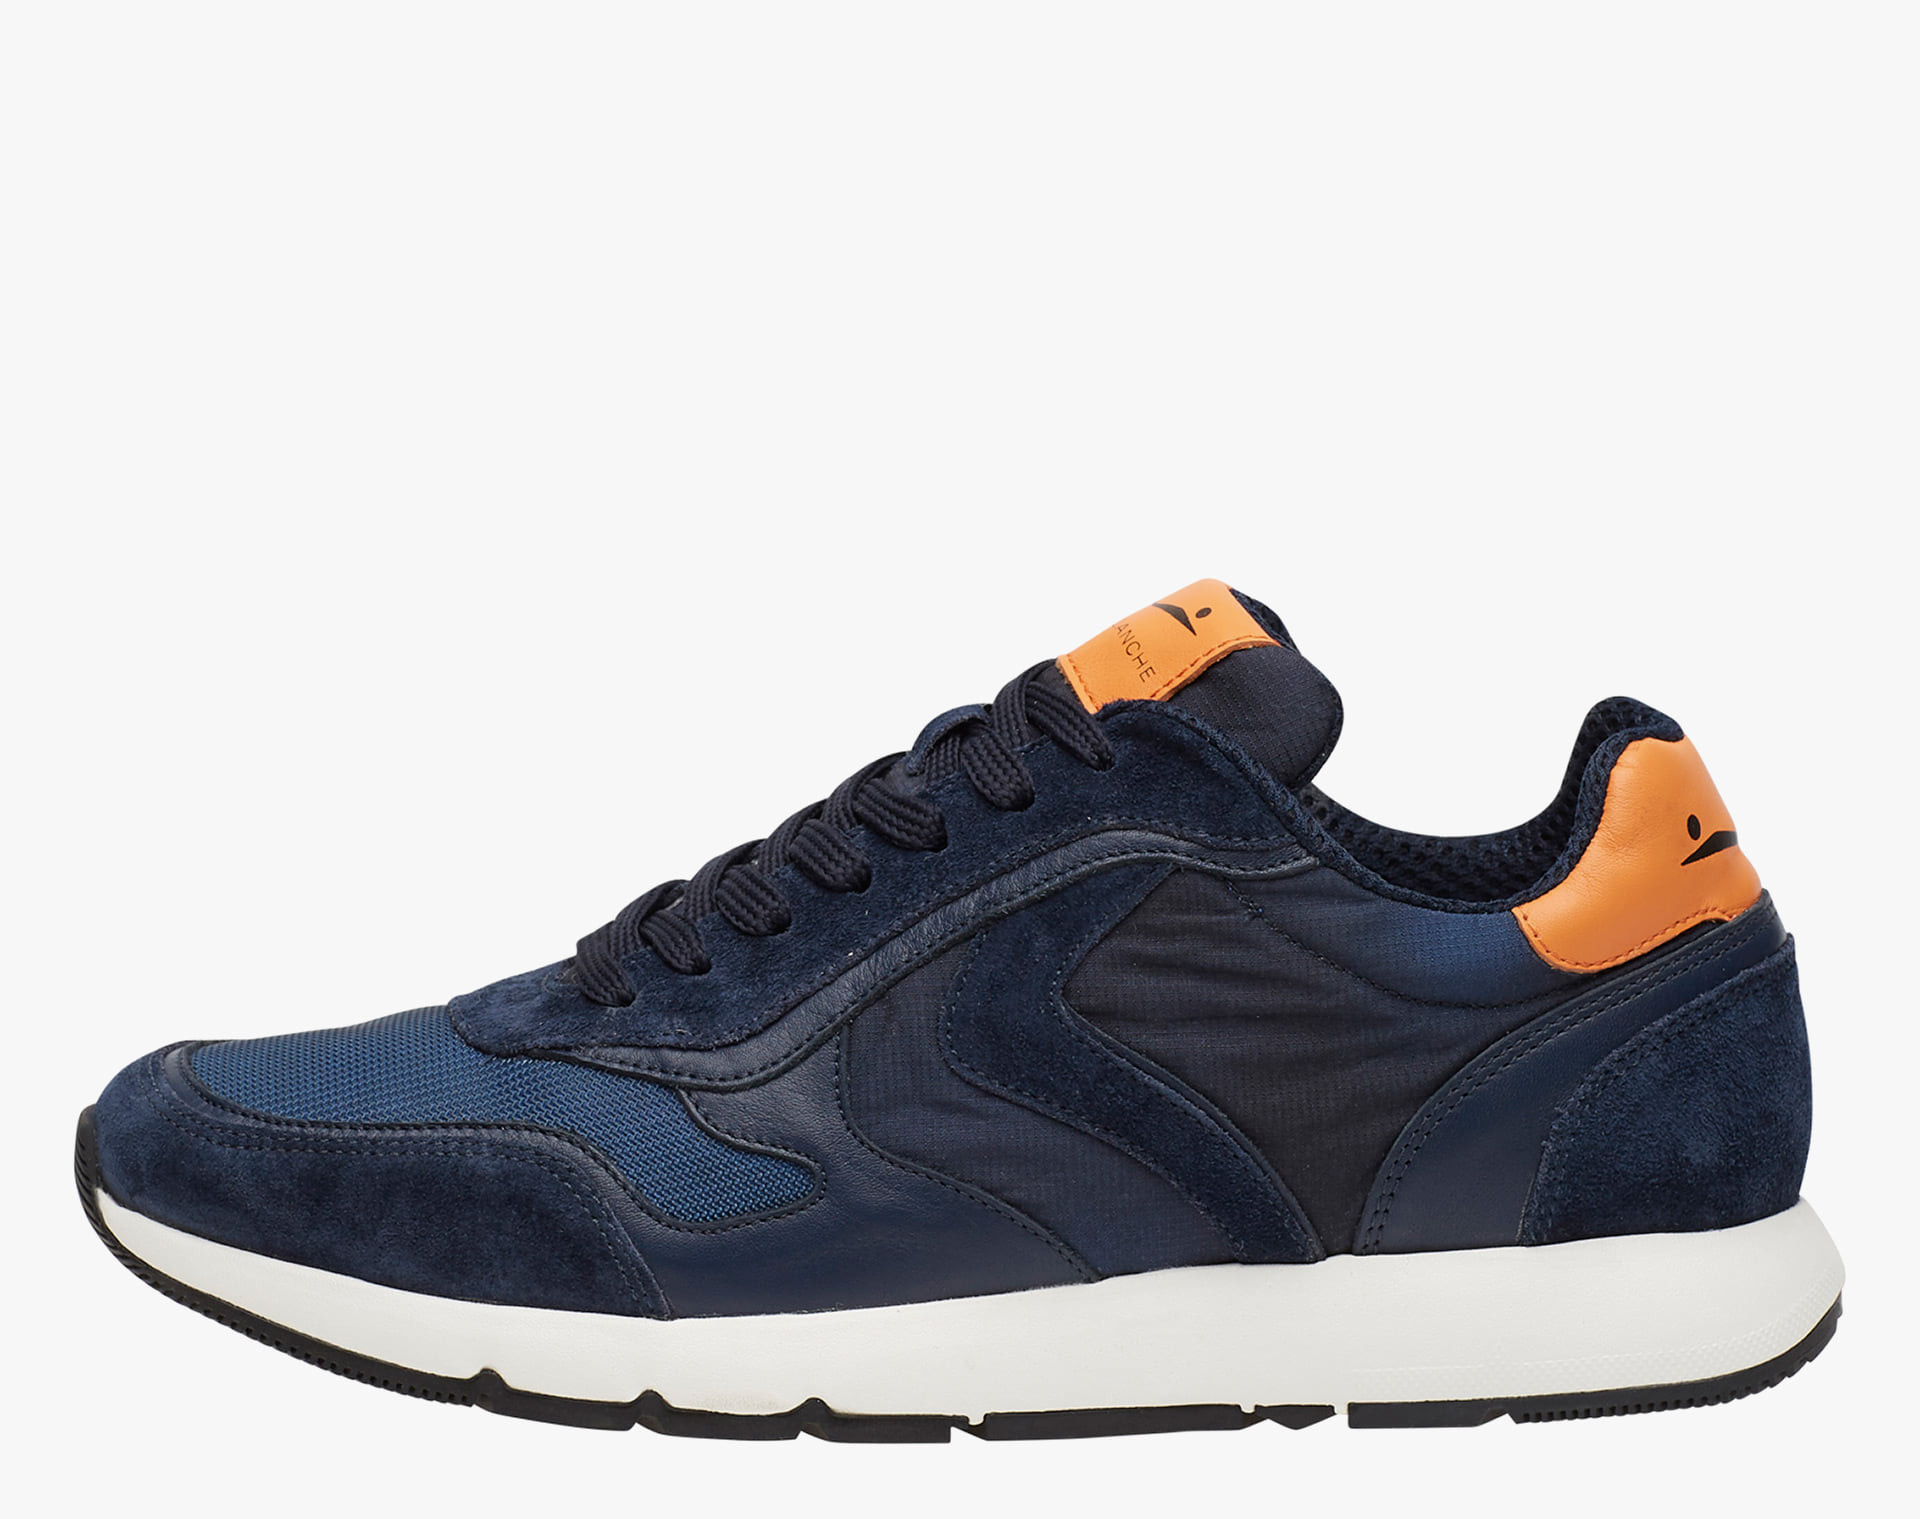 REUBENT - Sneakers in leather and nylon - Blue-Orange